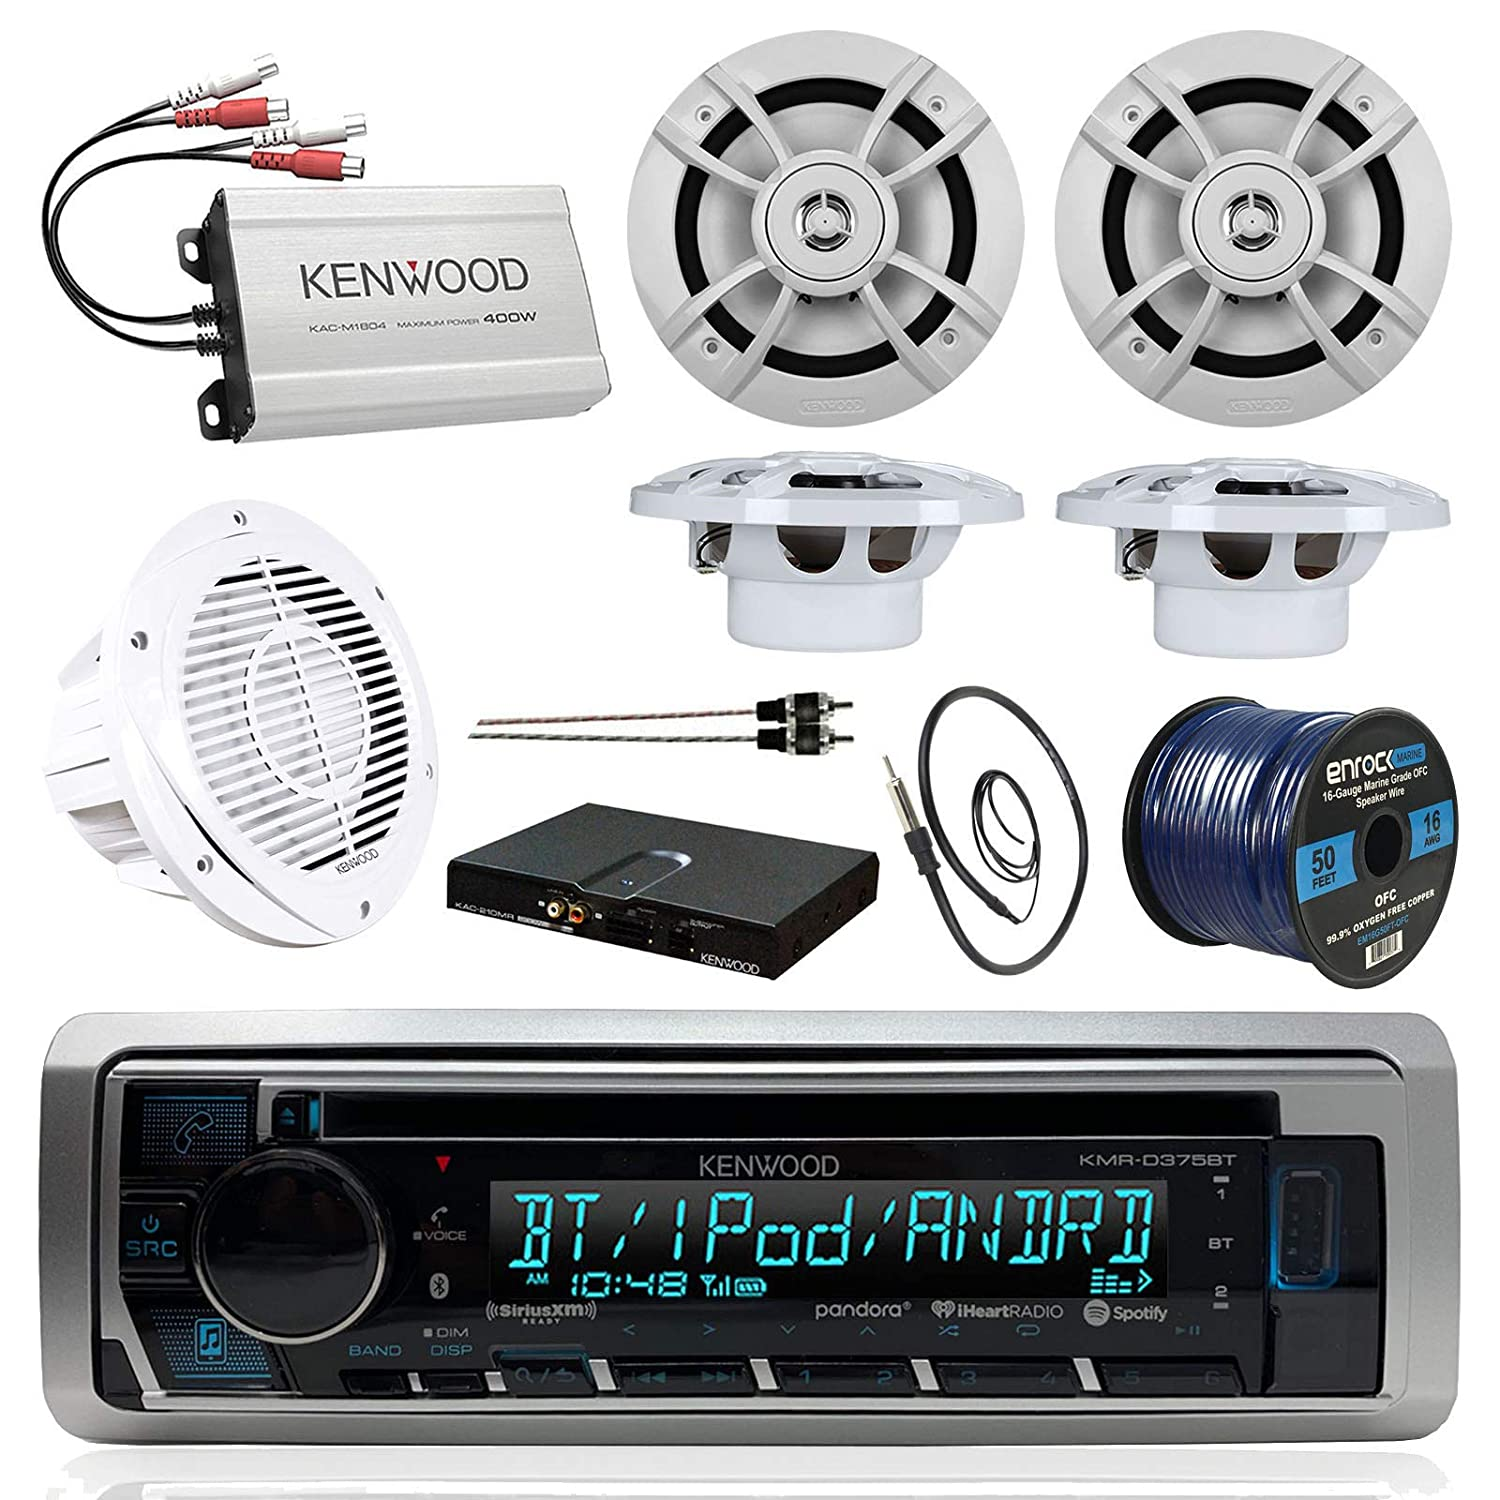 Boat Sound System Package Kenwood Marine Bluetooth Wiring Diagram Further Head Unit On Cd Changer Receiver Compact 4 Ch Amp 65 Inch Speakers 10 Woofer Sub